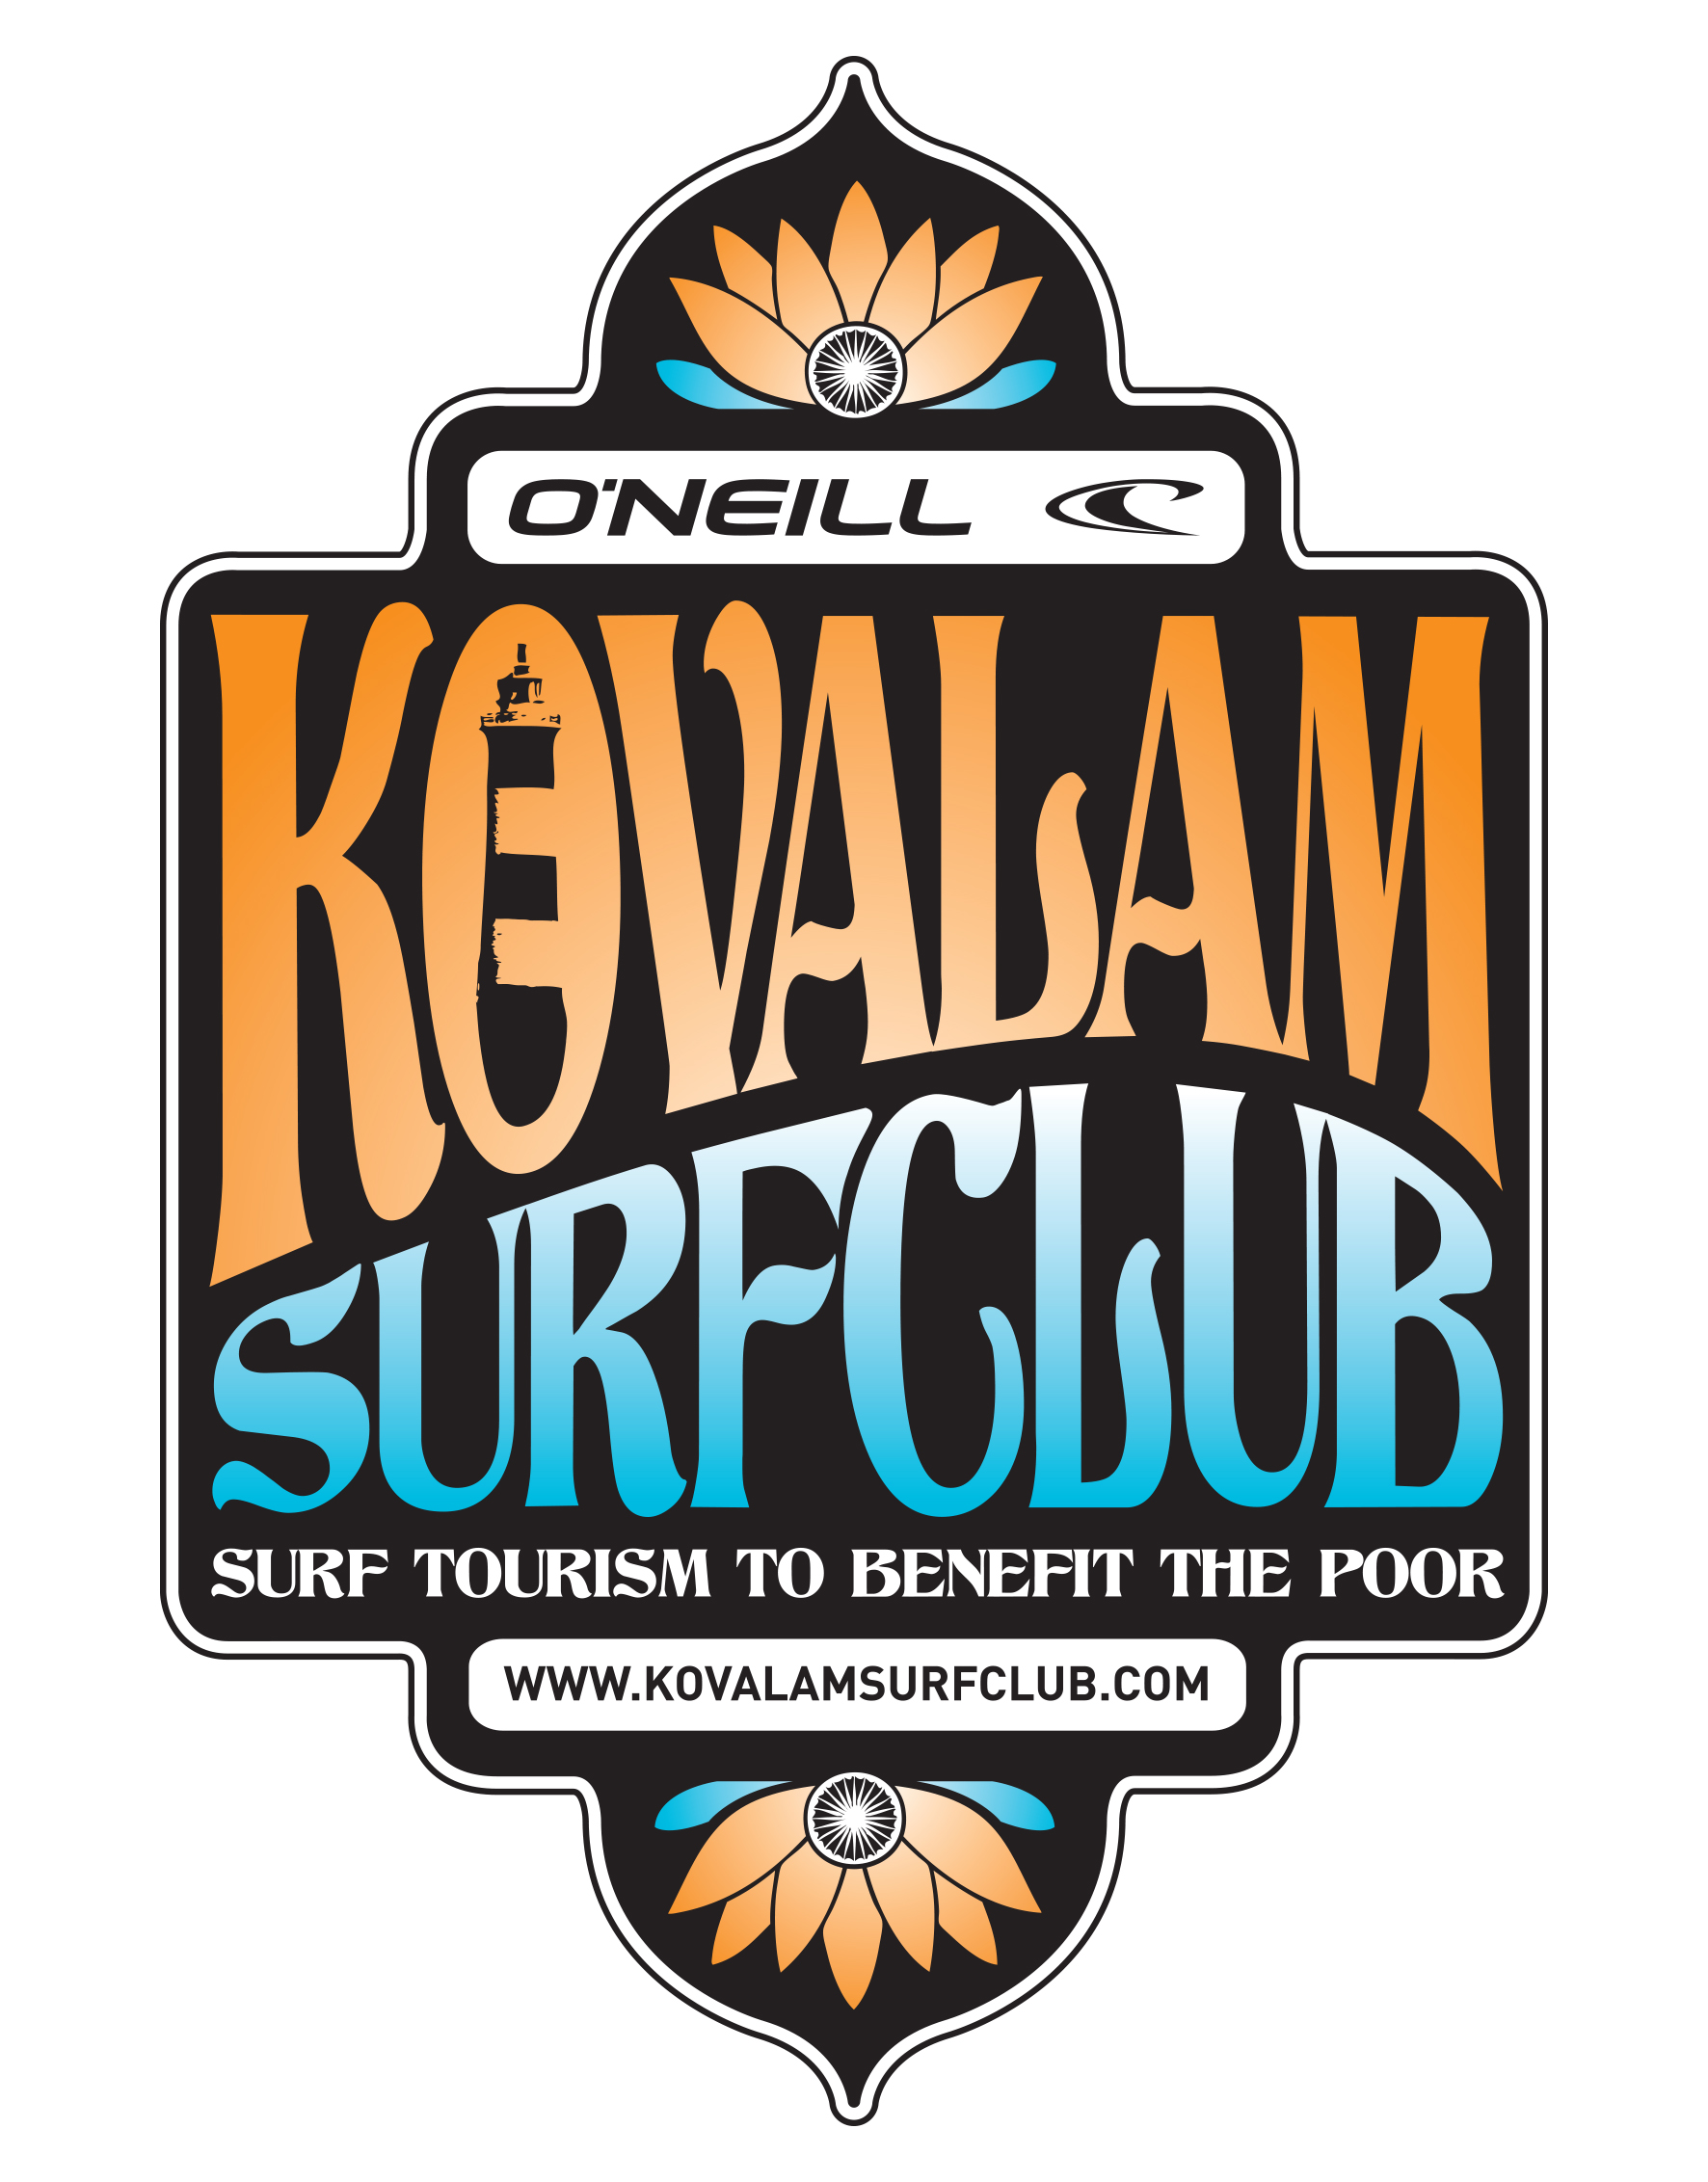 Surfing in India with the Kovalam Surfclub